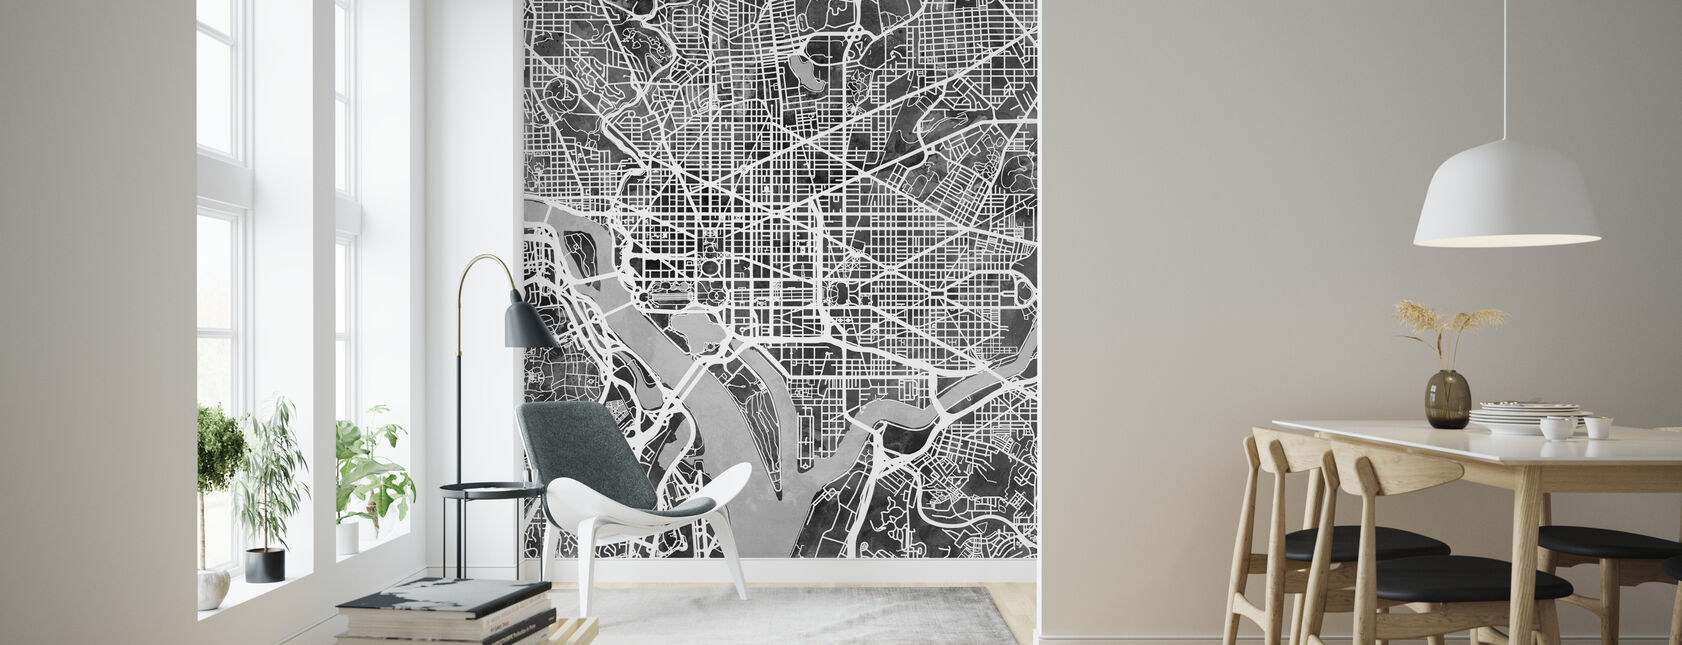 Washington DC Street Map B/W - Wallpaper - Living Room